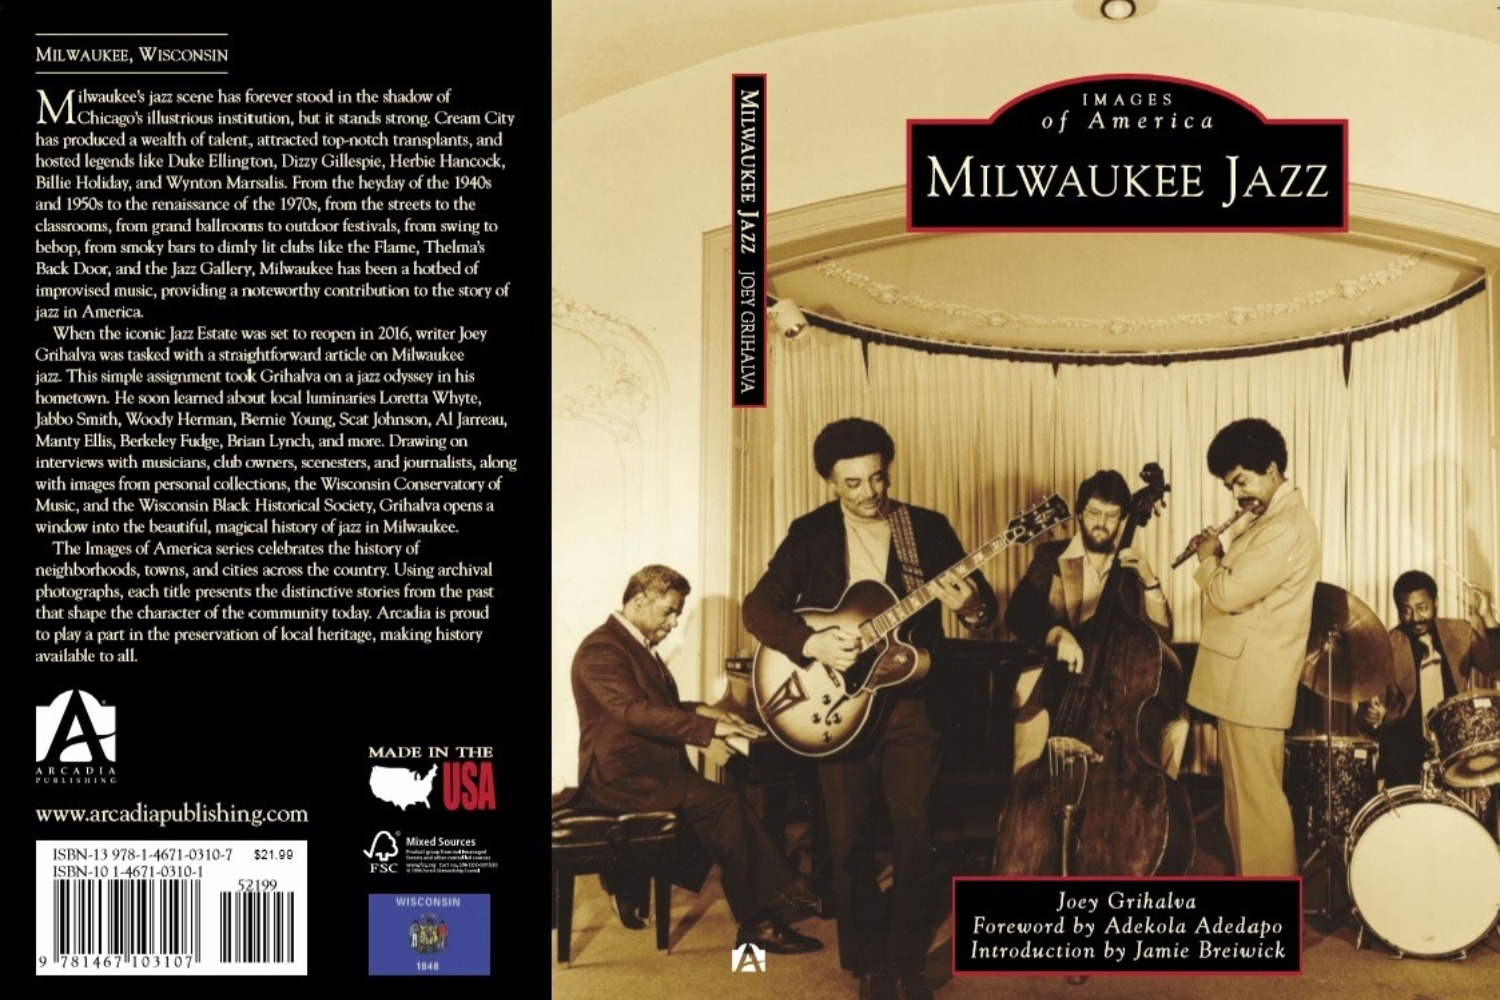 Milwaukee Jazz by Joey Grihalva. Image from Arcadia Publishing.